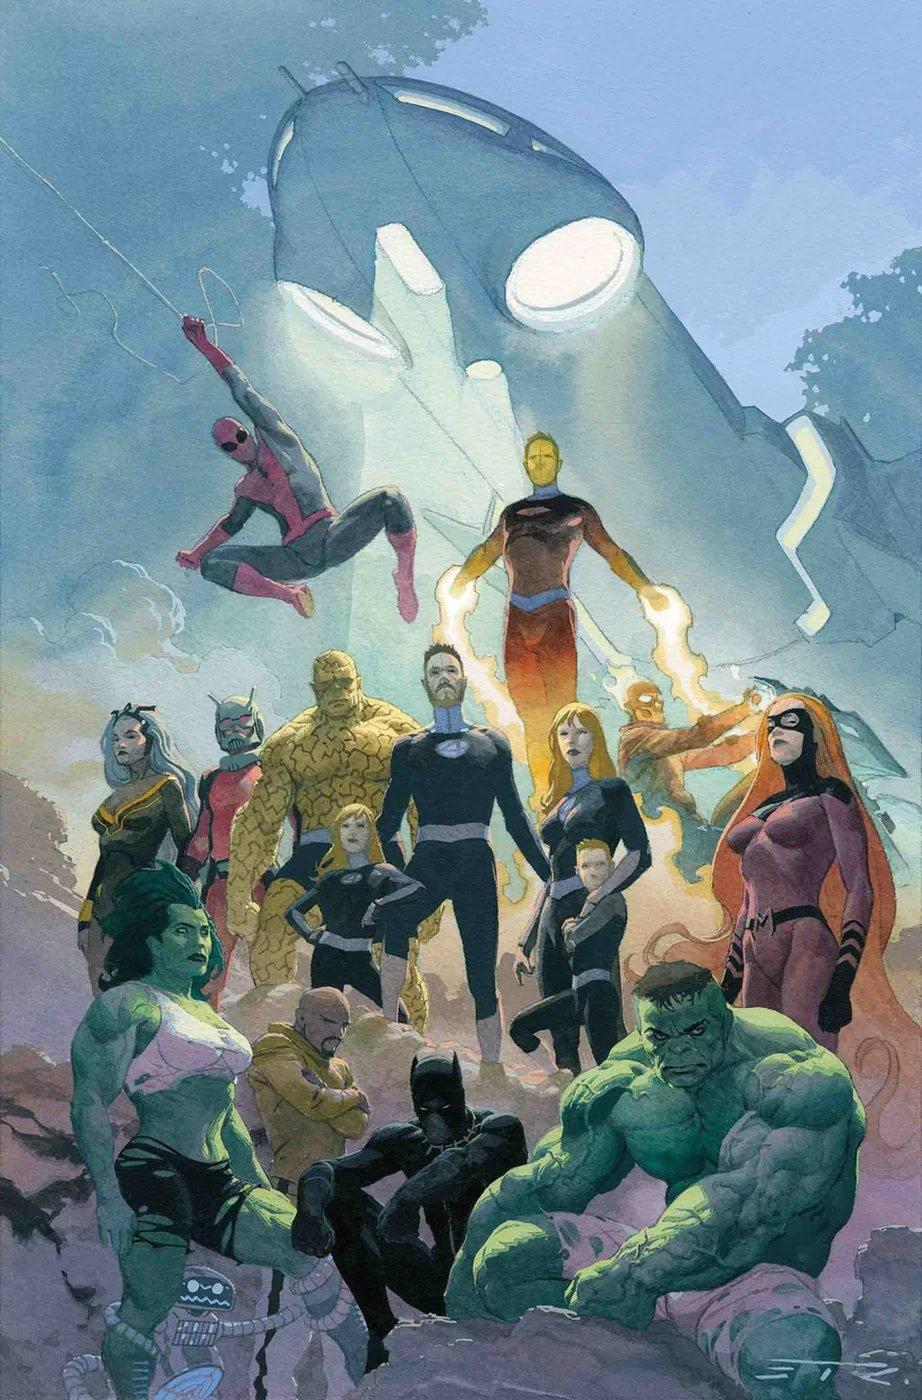 Fantastic Four Vol. 6 #3